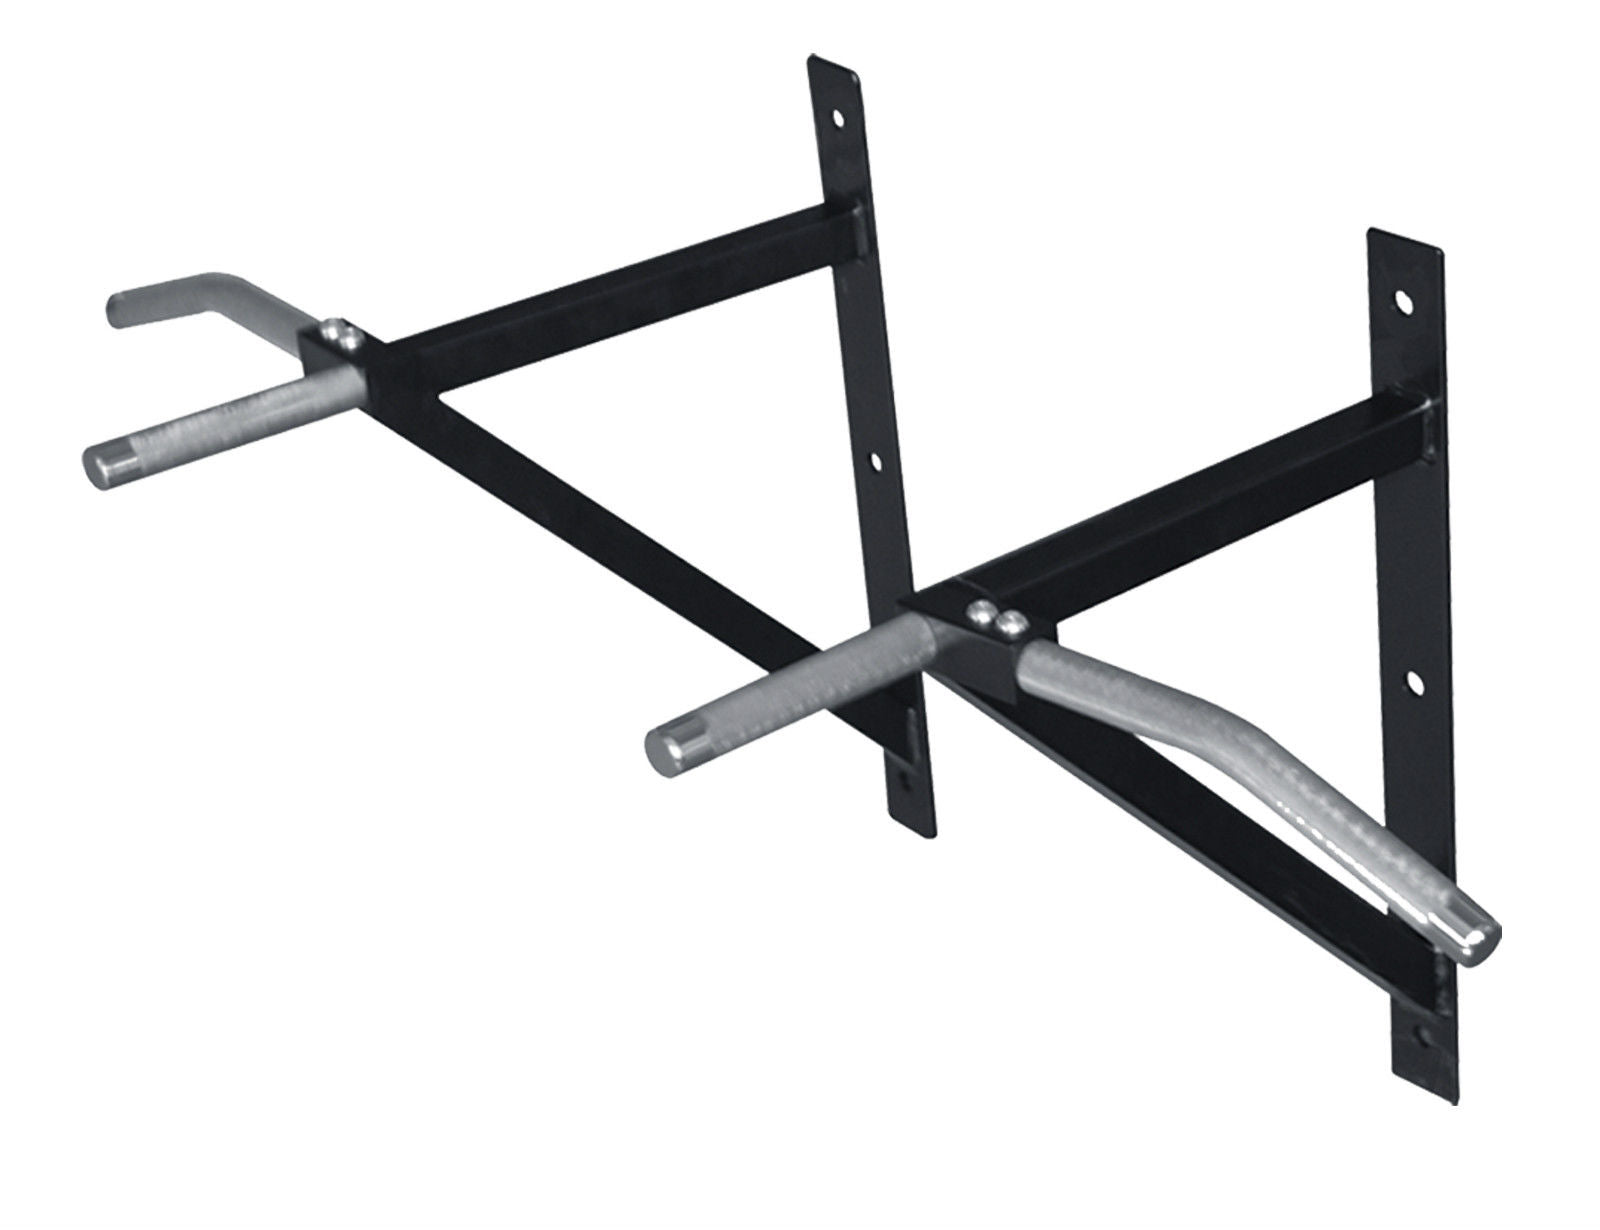 ChinUpFlex Wall Mounted Multi-Grip Chin Up Bar comes in silver and black from WeRSports